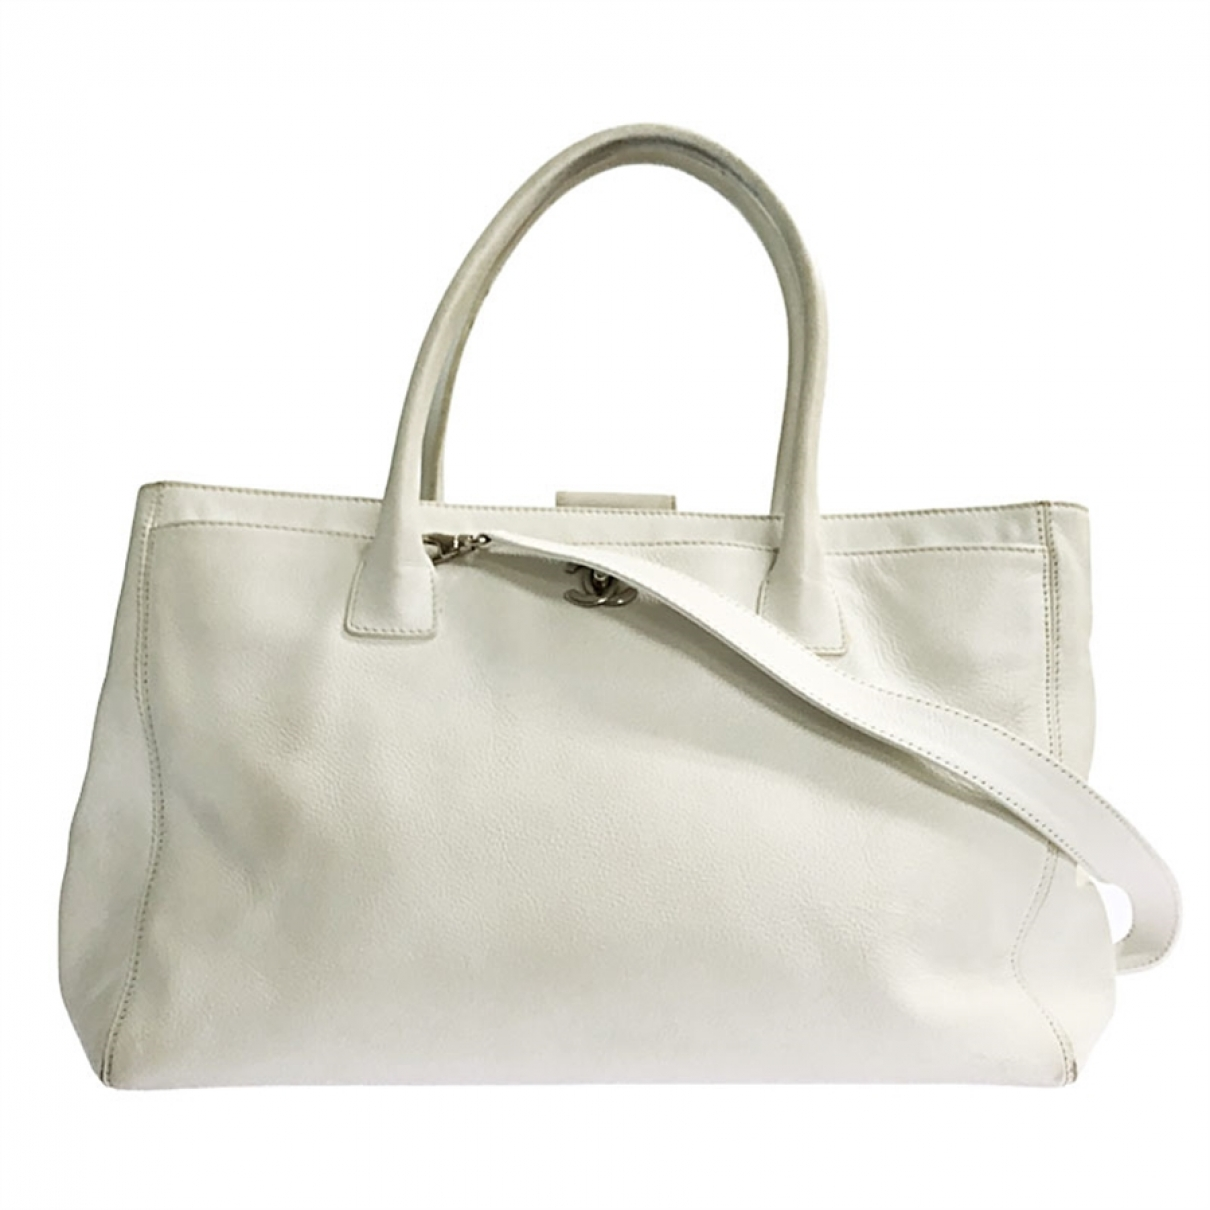 Chanel Executive White Leather handbag for Women \N